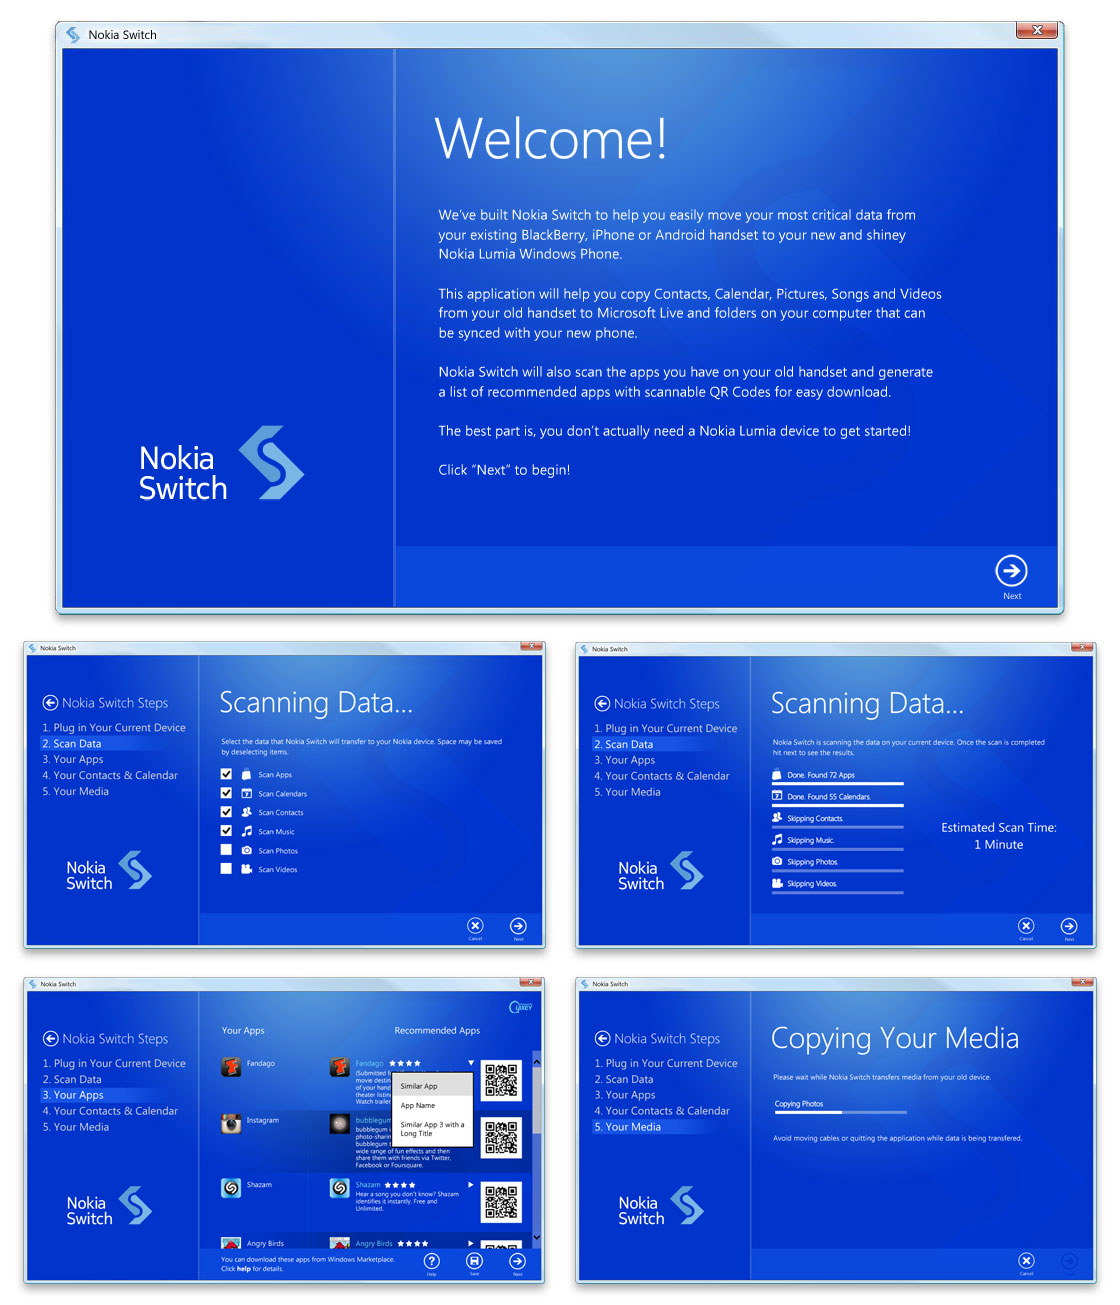 nokia-switch-grid-layout-webscreens